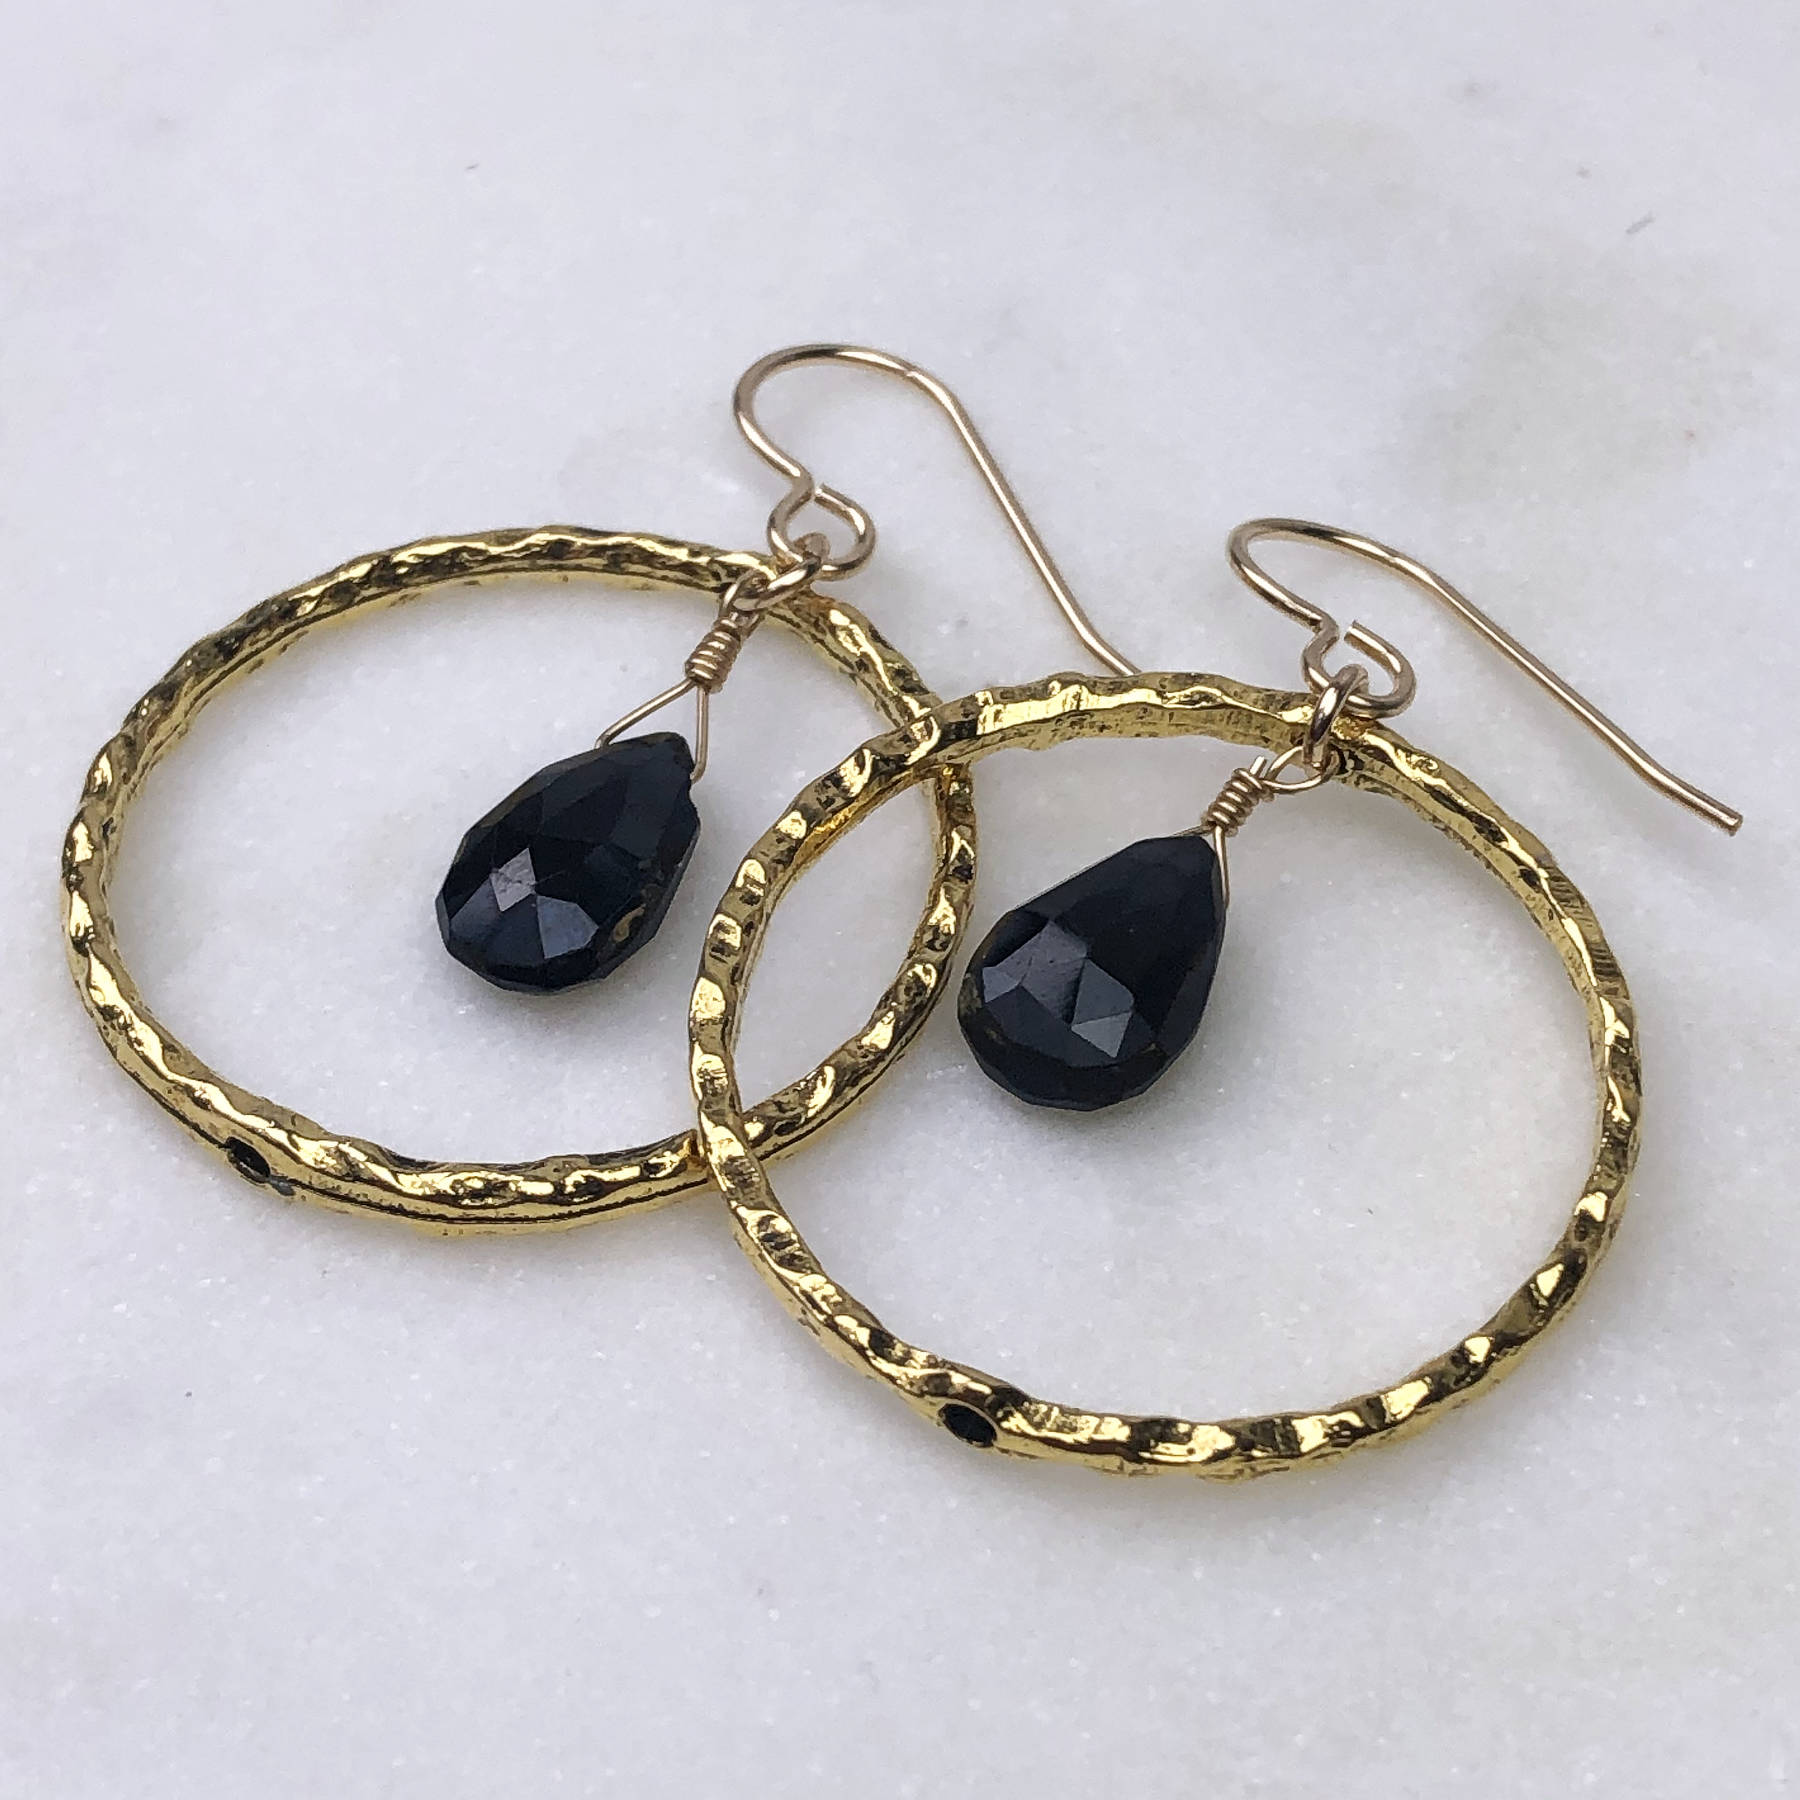 Hammered Gold Hoops with Faceted Black Onyx Earrings